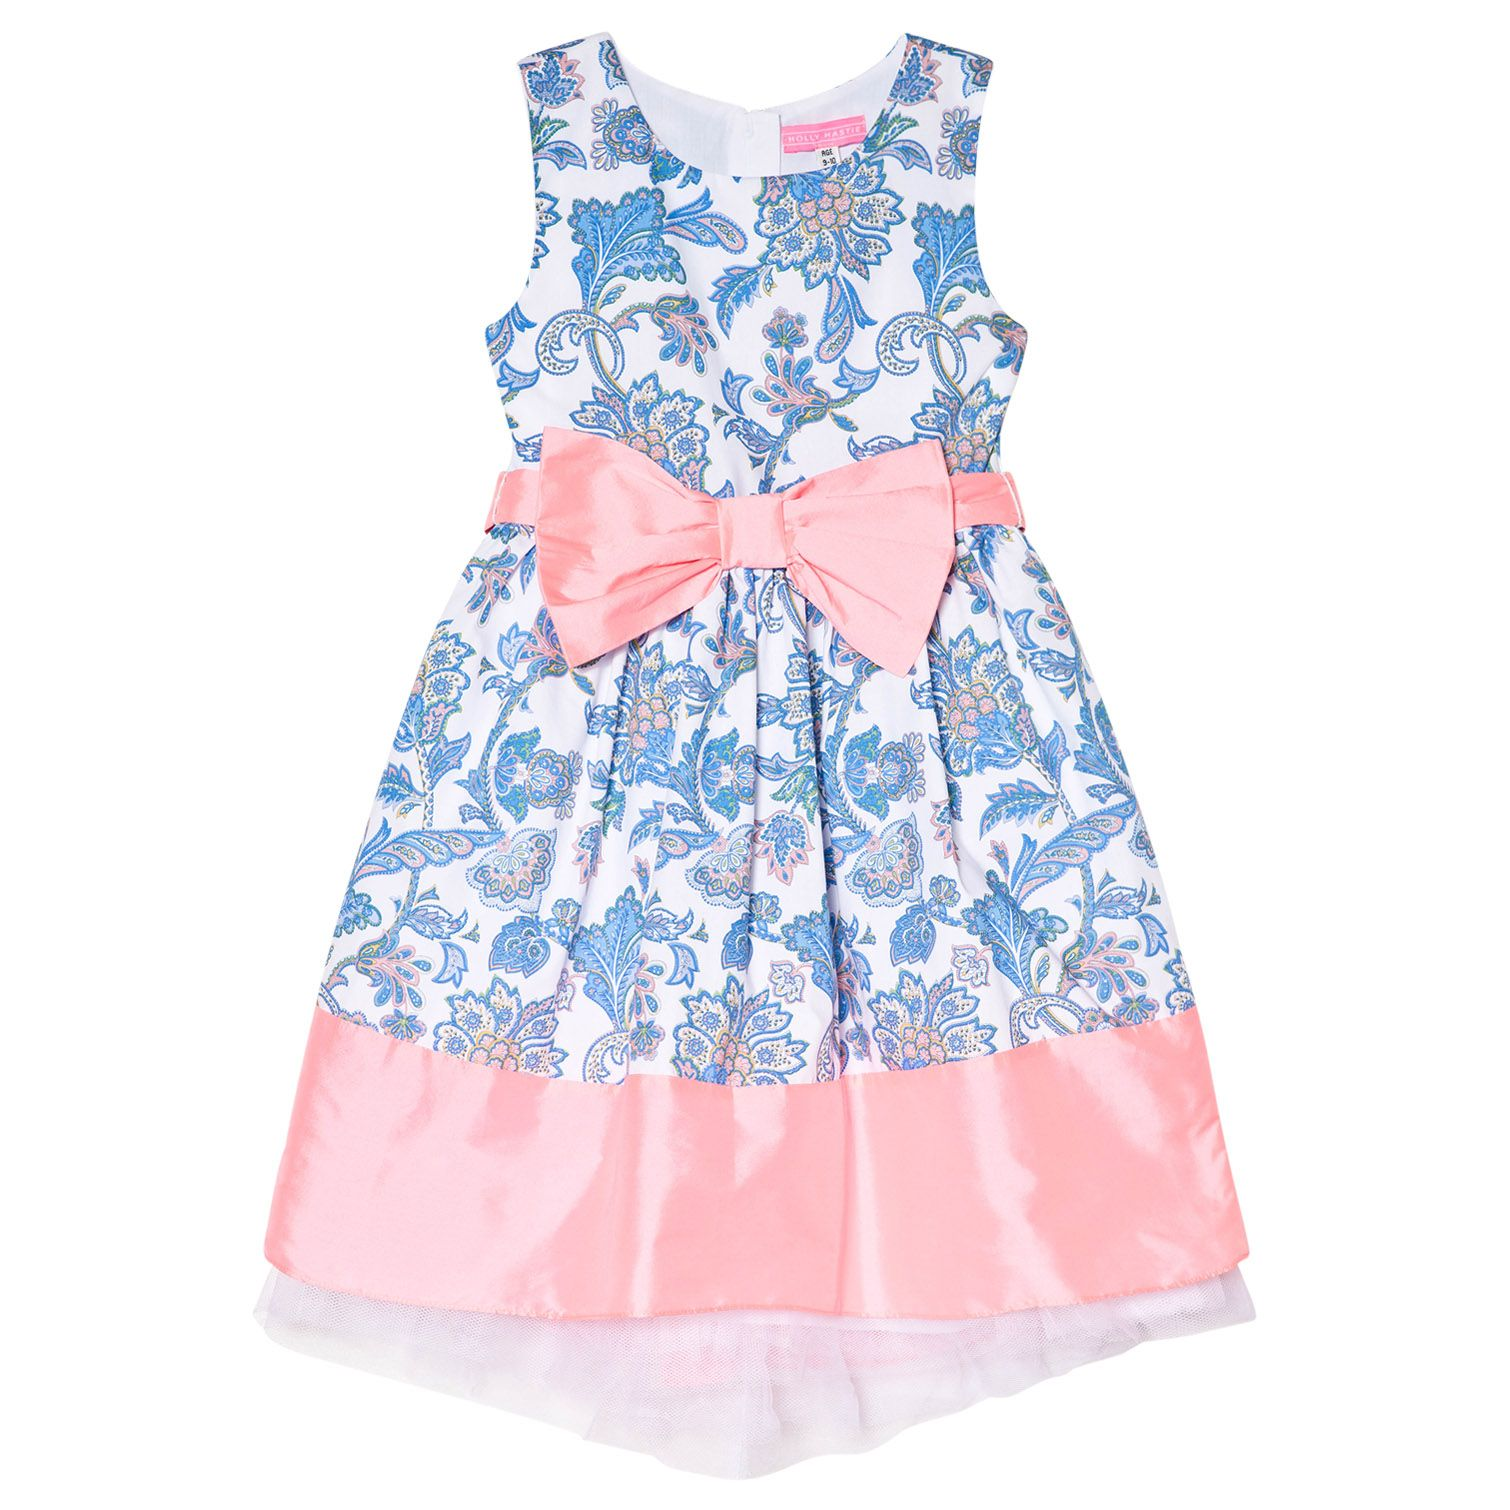 81f23056a Pretty Easter Dresses For Toddlers And Little Girls – Reviews ...